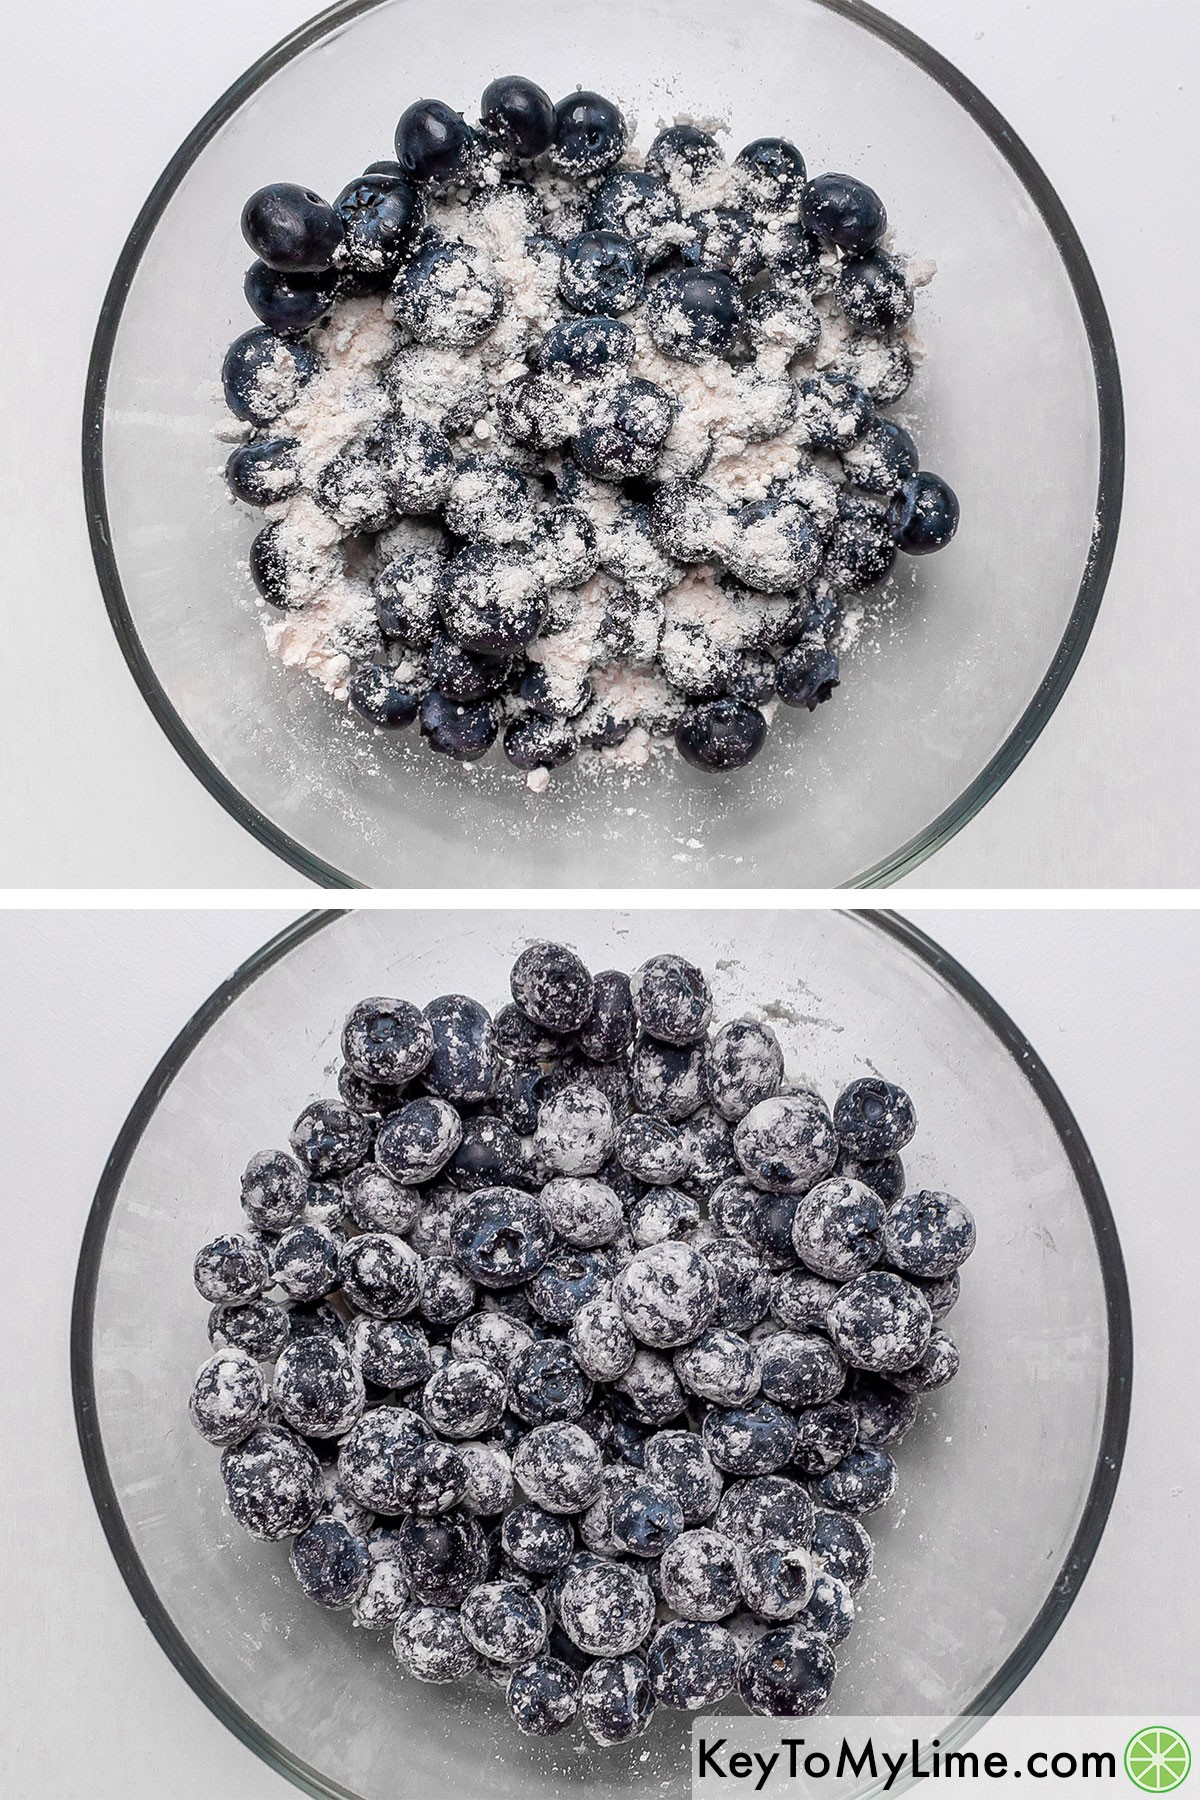 Coating fresh blueberries in a small amount of Bisquick.